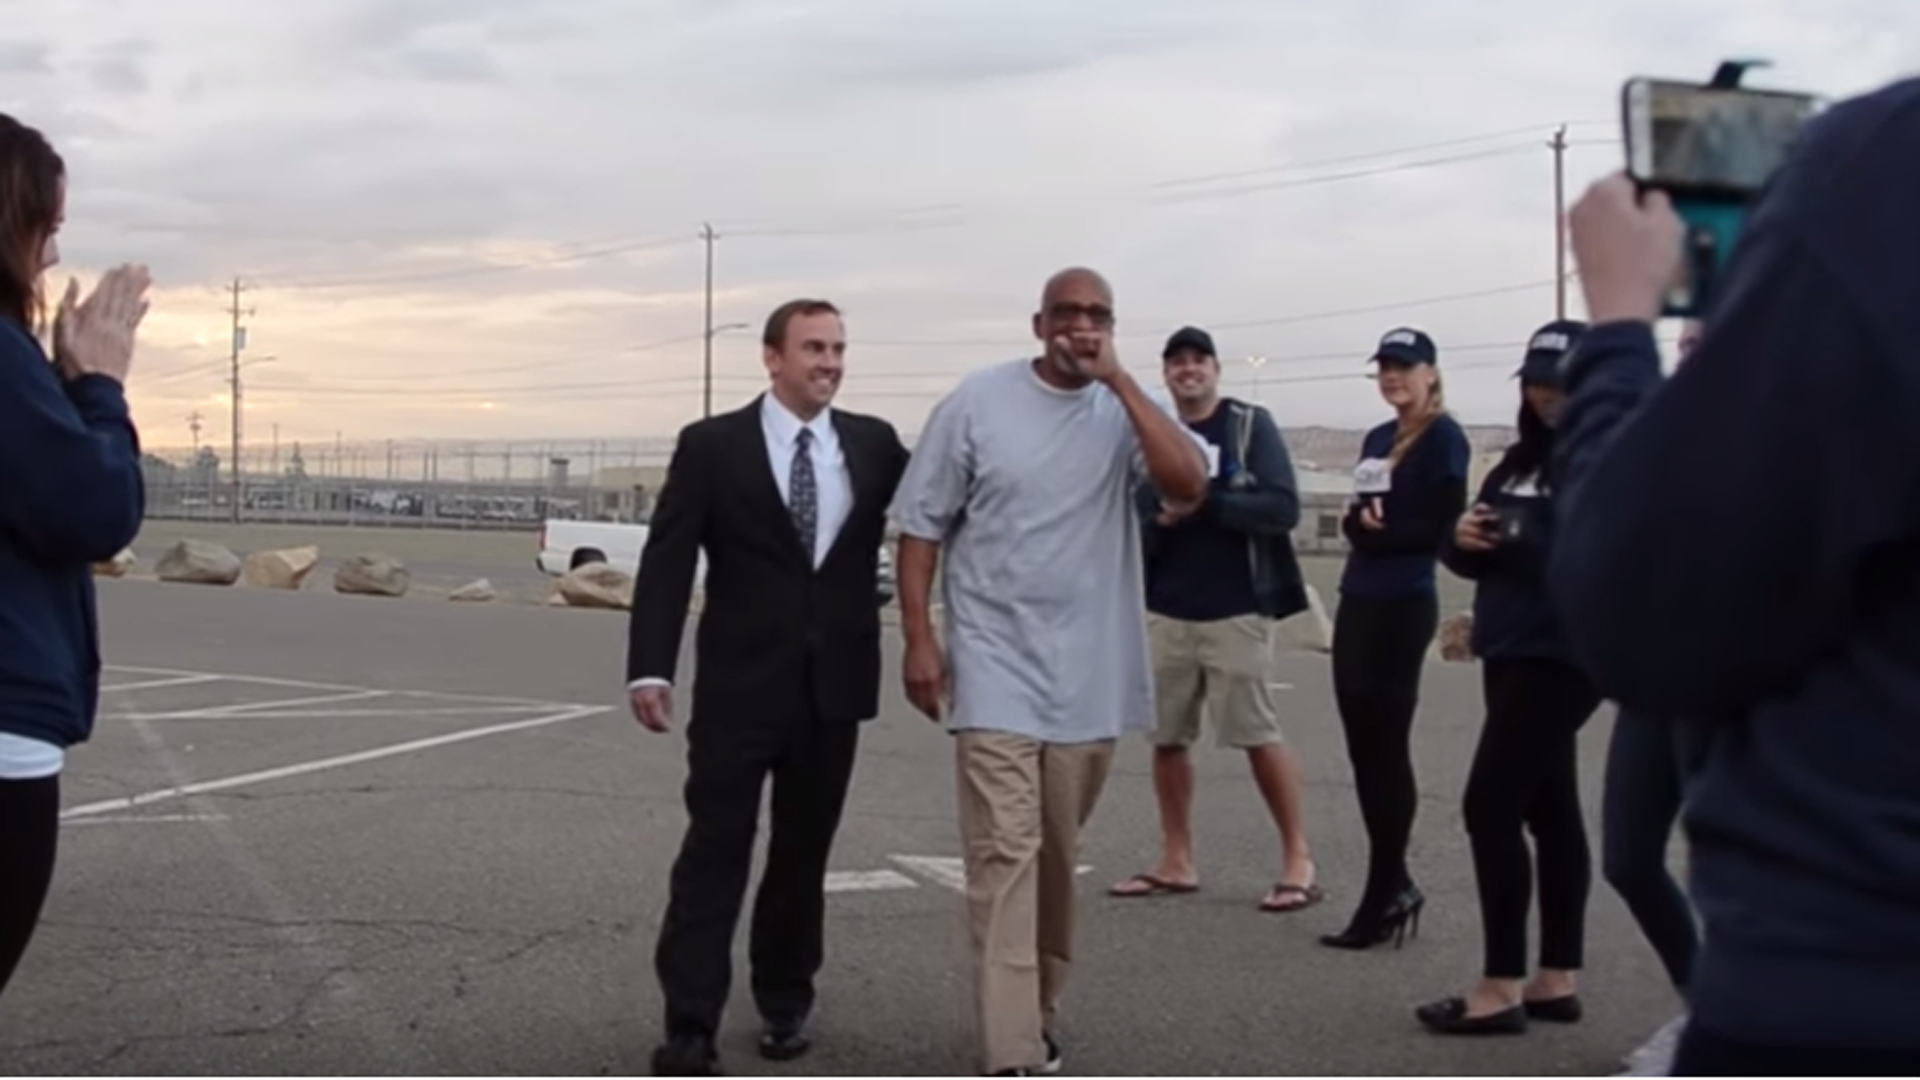 Horace Roberts walks out of a Riverside prison a free man on Oct. 15, 2018, after being exonerated. (California Innocence Project)